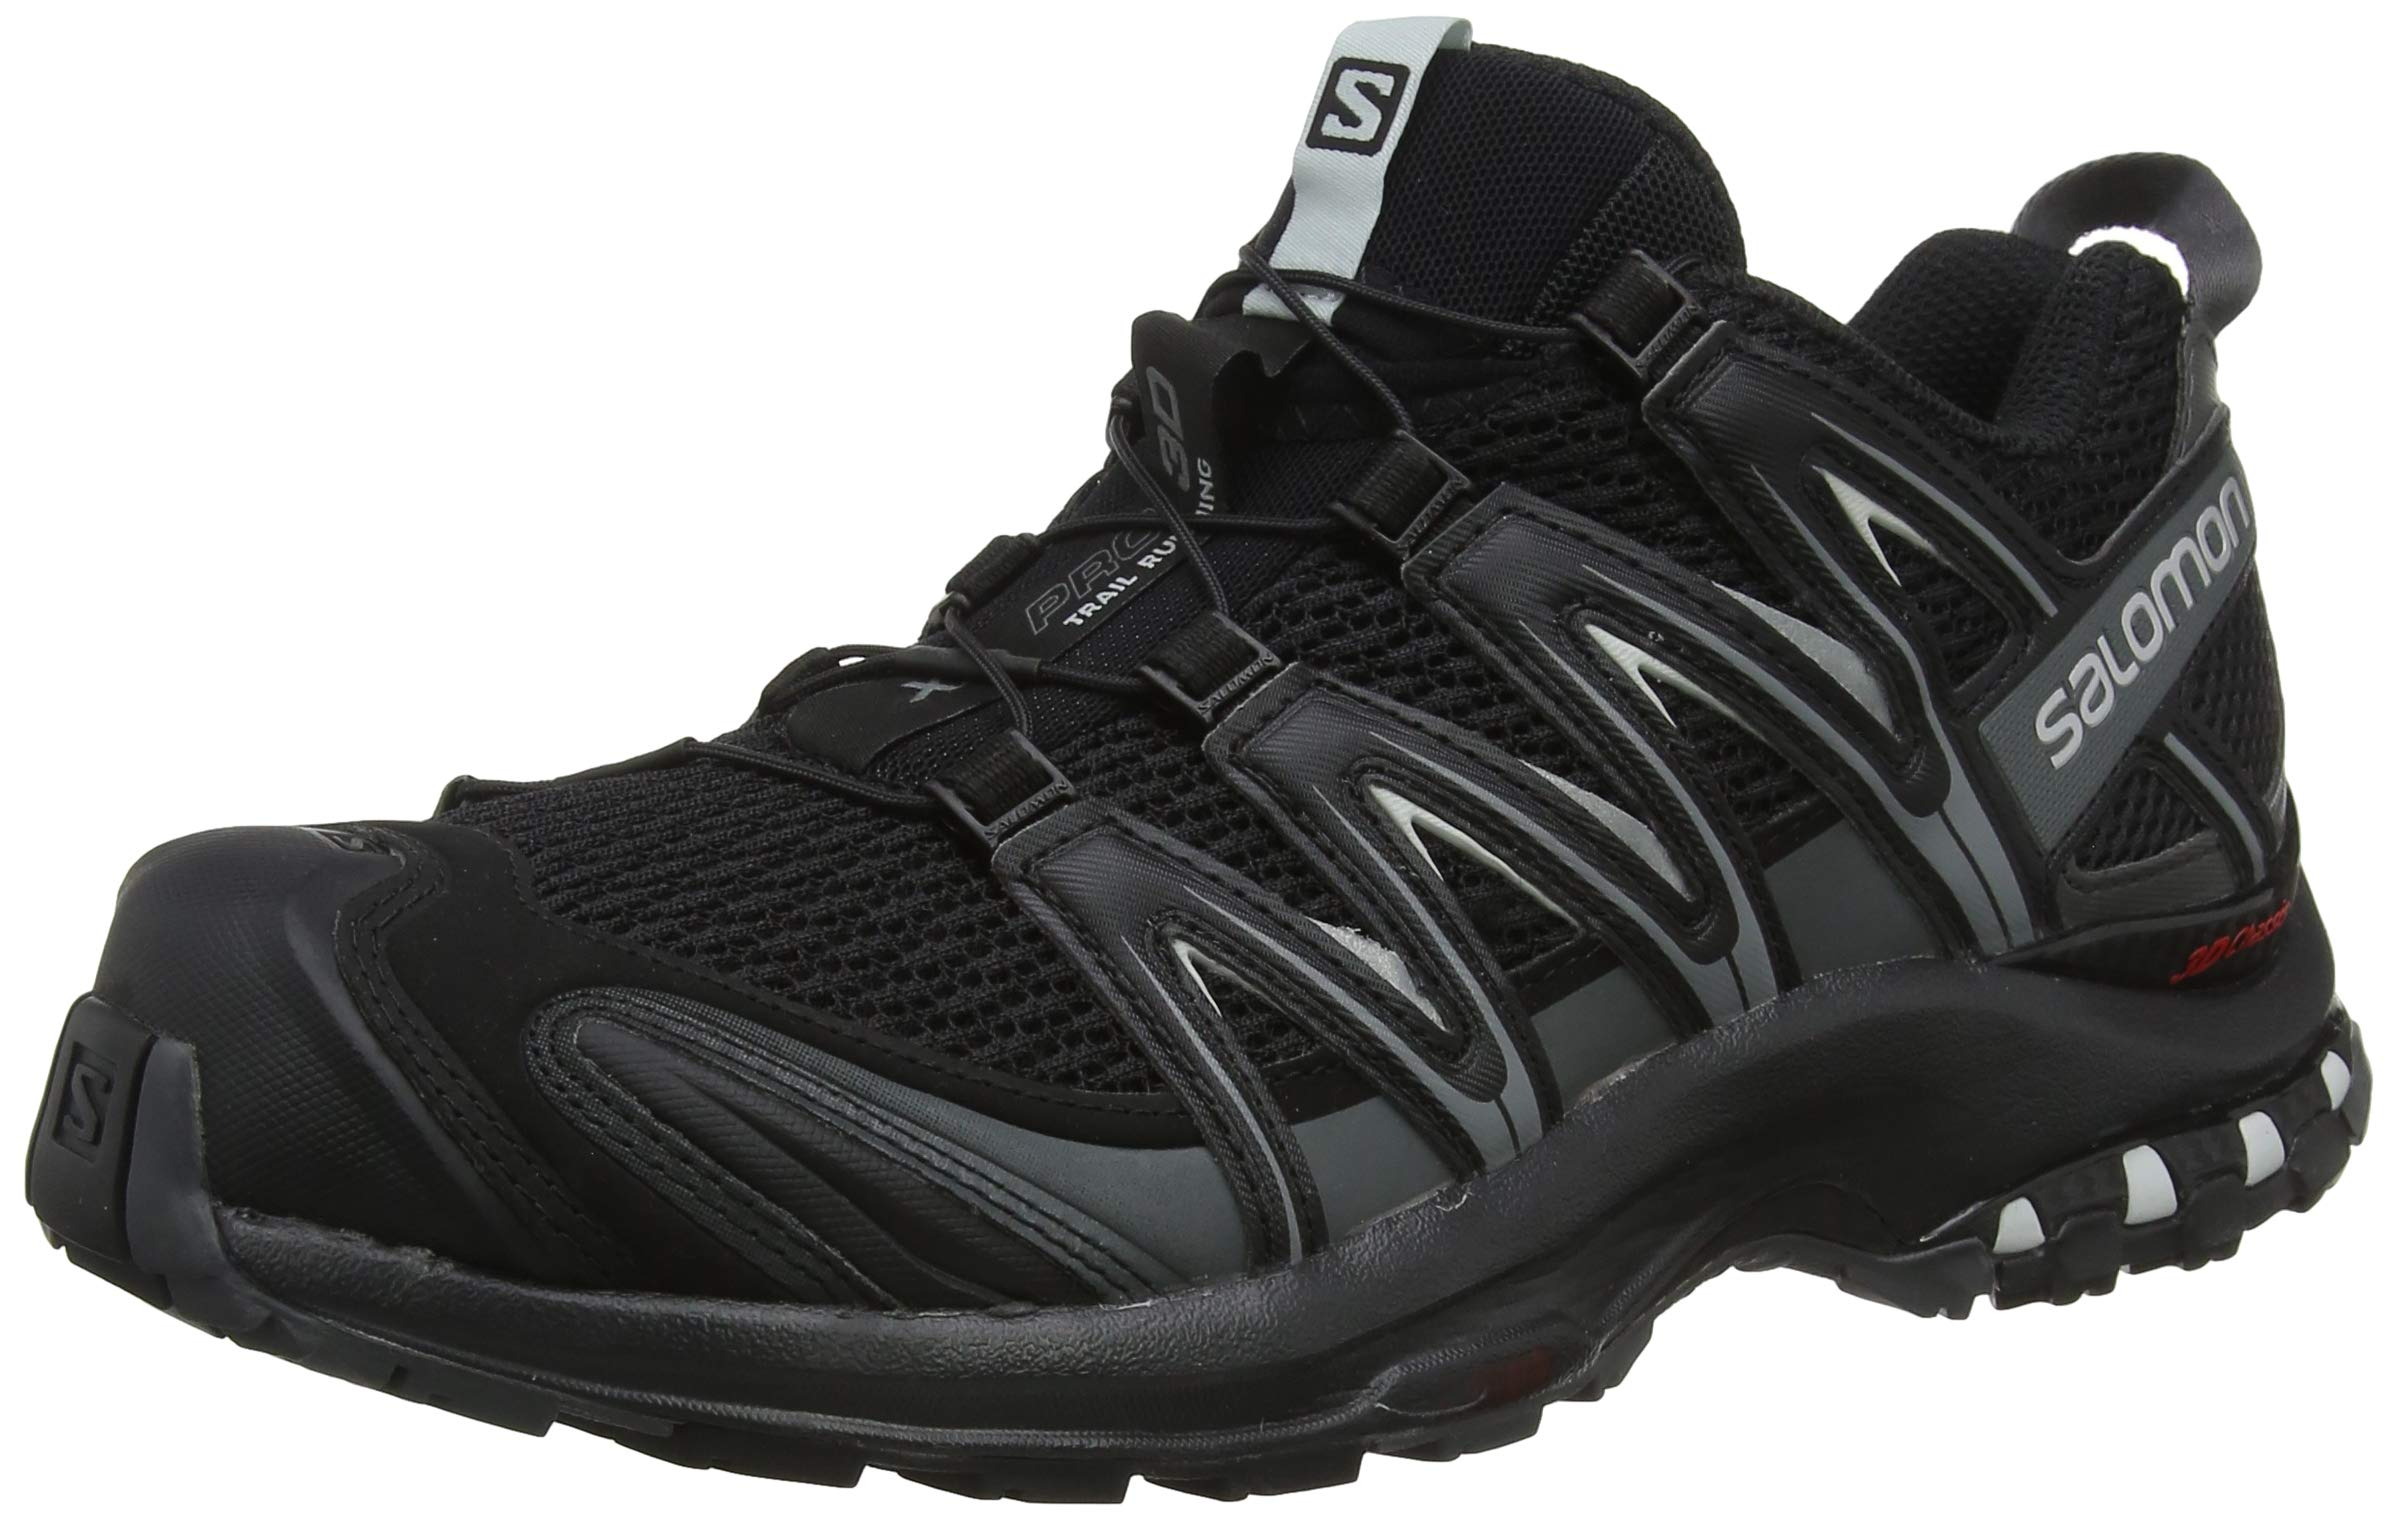 Salomon Men's XA Pro 3D Trail Running Shoes, black, 9.5 M US by Salomon